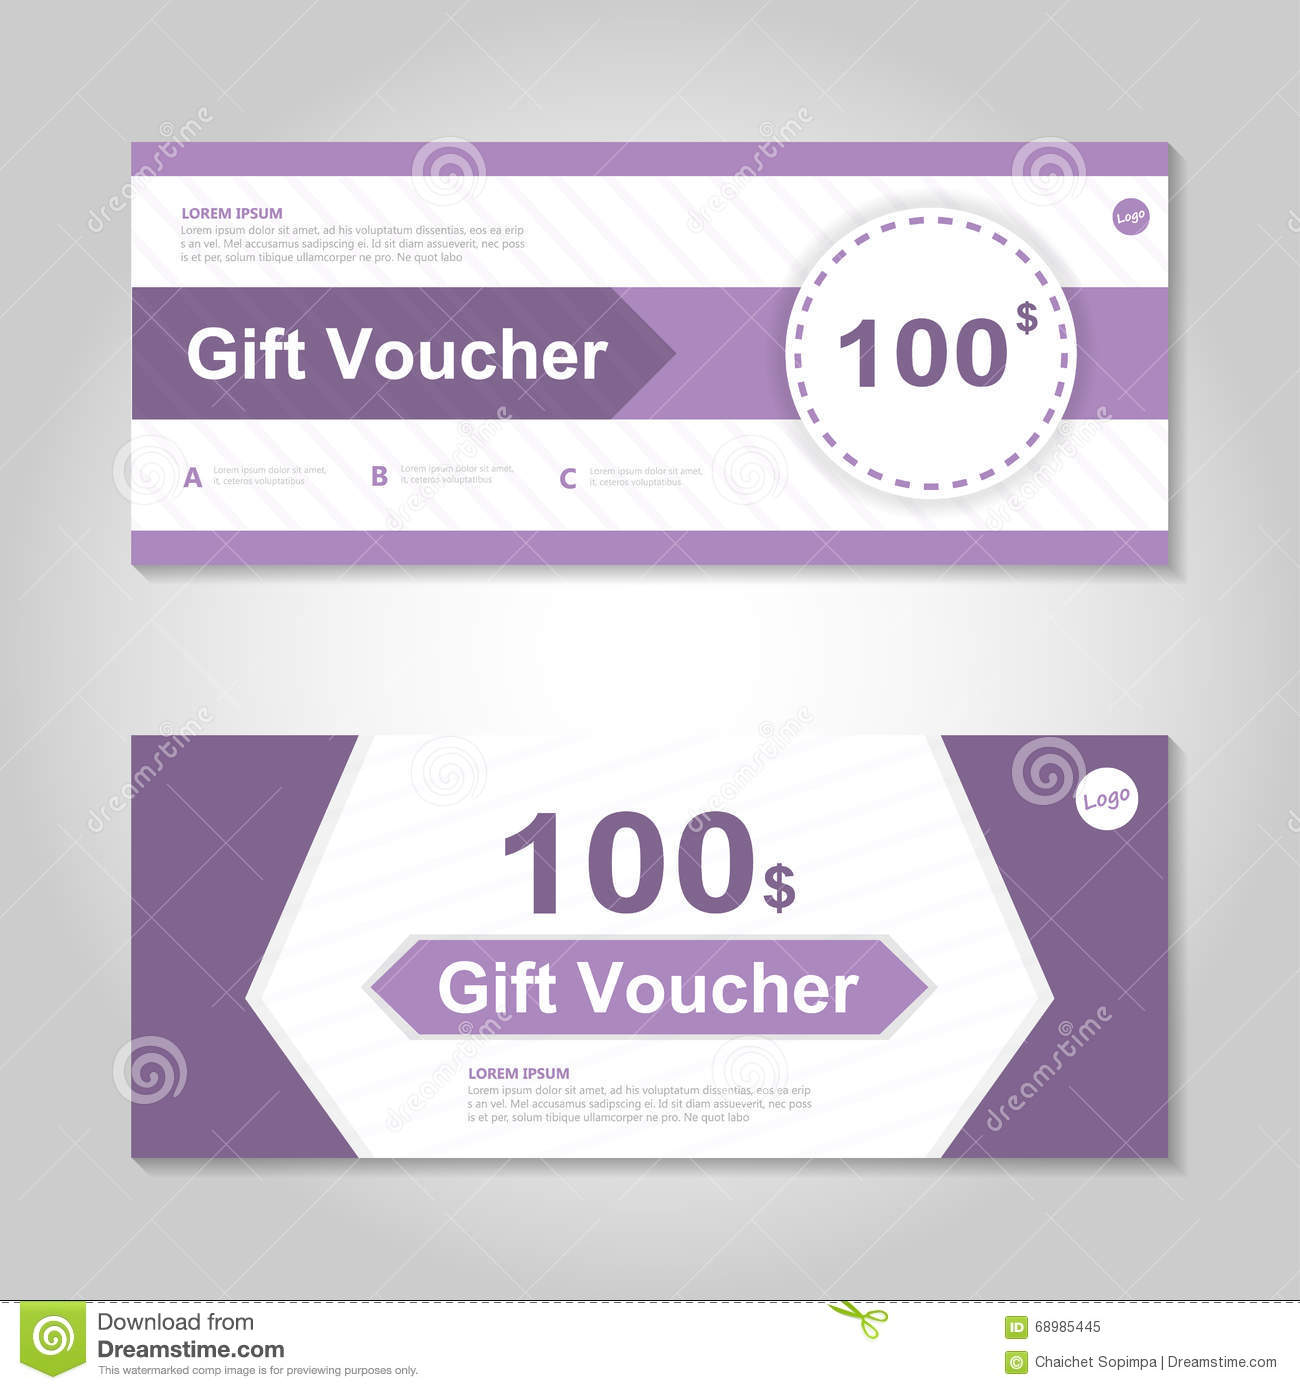 doc 500500 coupon layout coupon layout sample coupon template discount coupon template discount coupon design template vector coupon layout